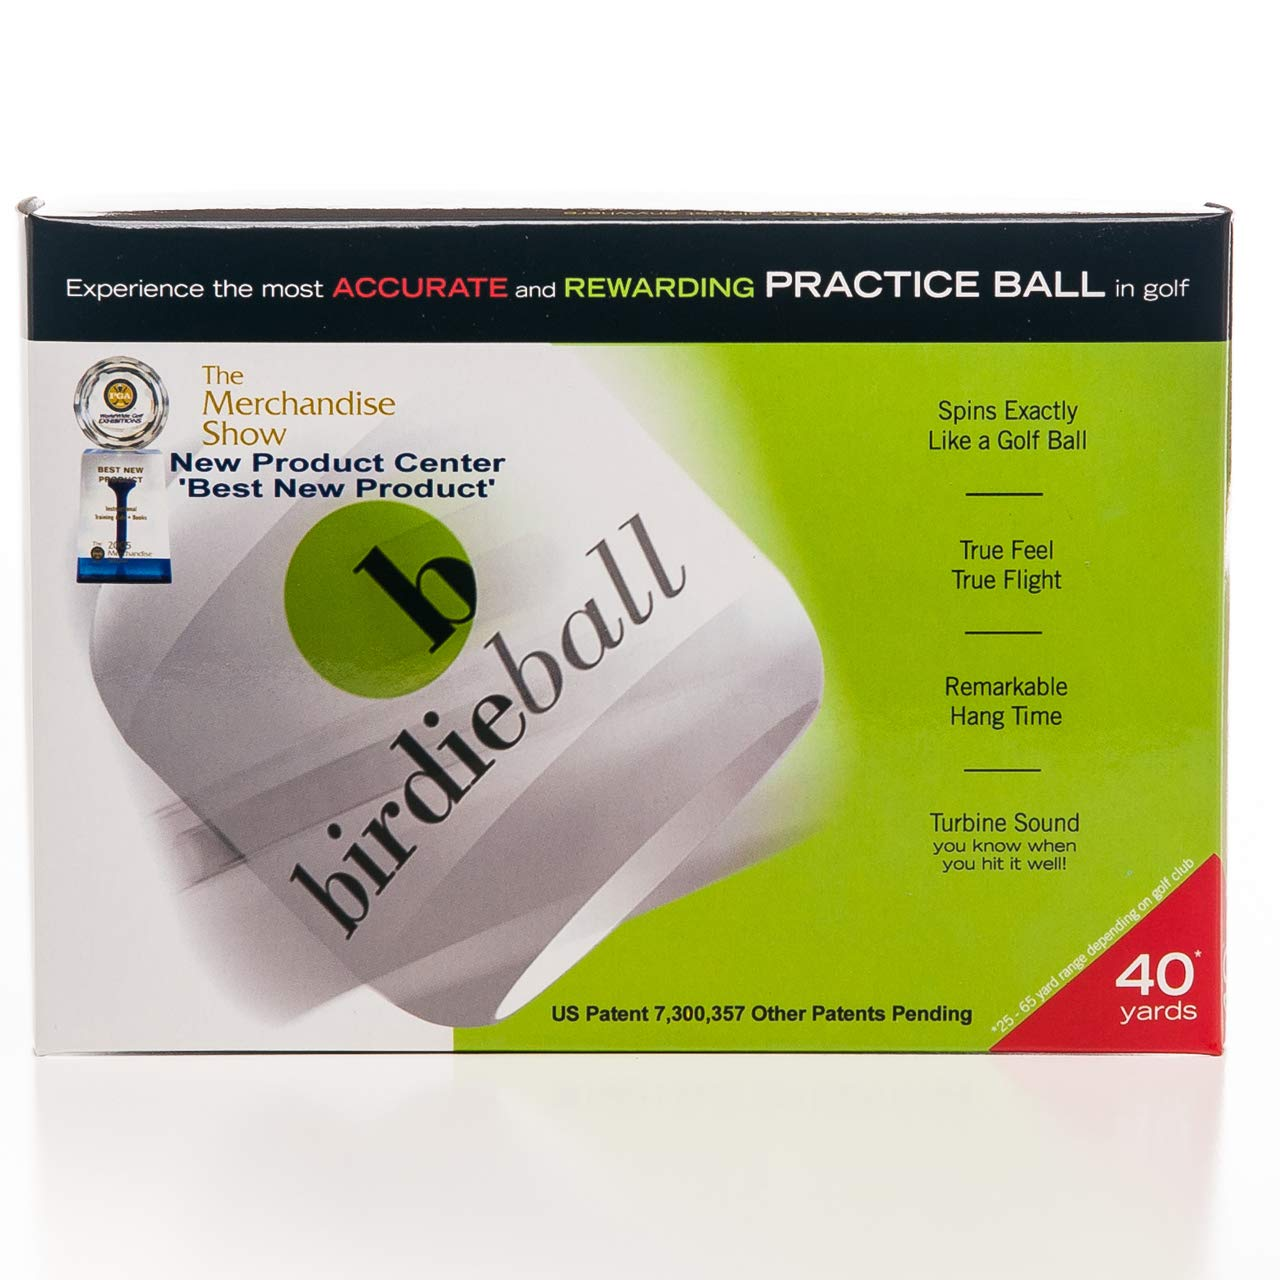 BirdieBall Practice Golf Balls, Full Swing Limited Flight Golf Practice Balls, Perfect Training Aid for All Golfers (pack of 12) by BirdieBall